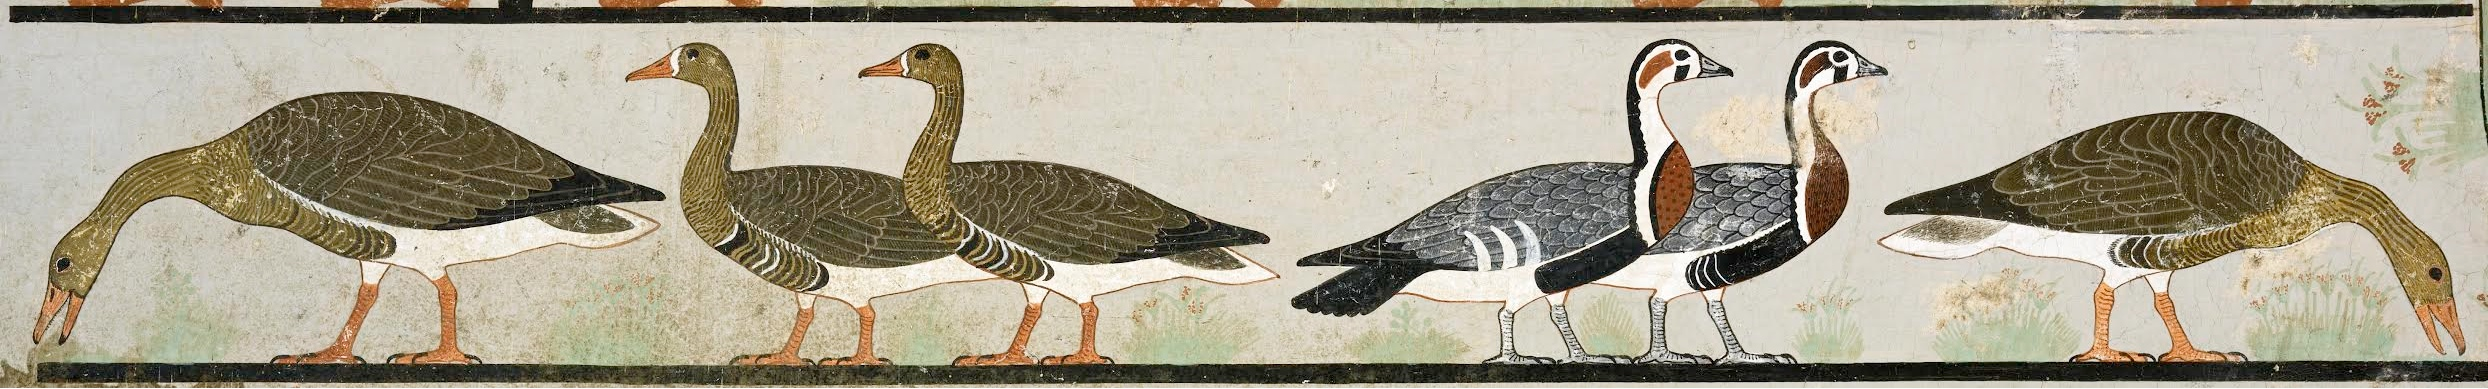 Egypt Geese Forgery